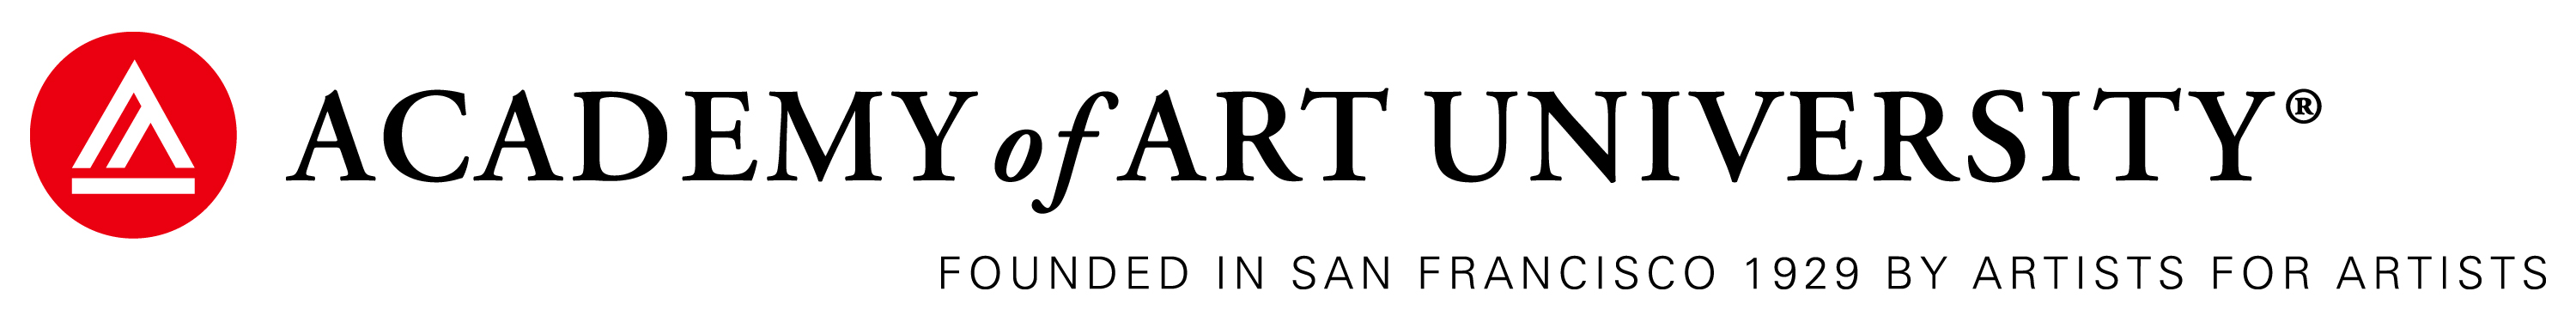 Academy of Art University, San Francisco, CA - Localwise business profile picture